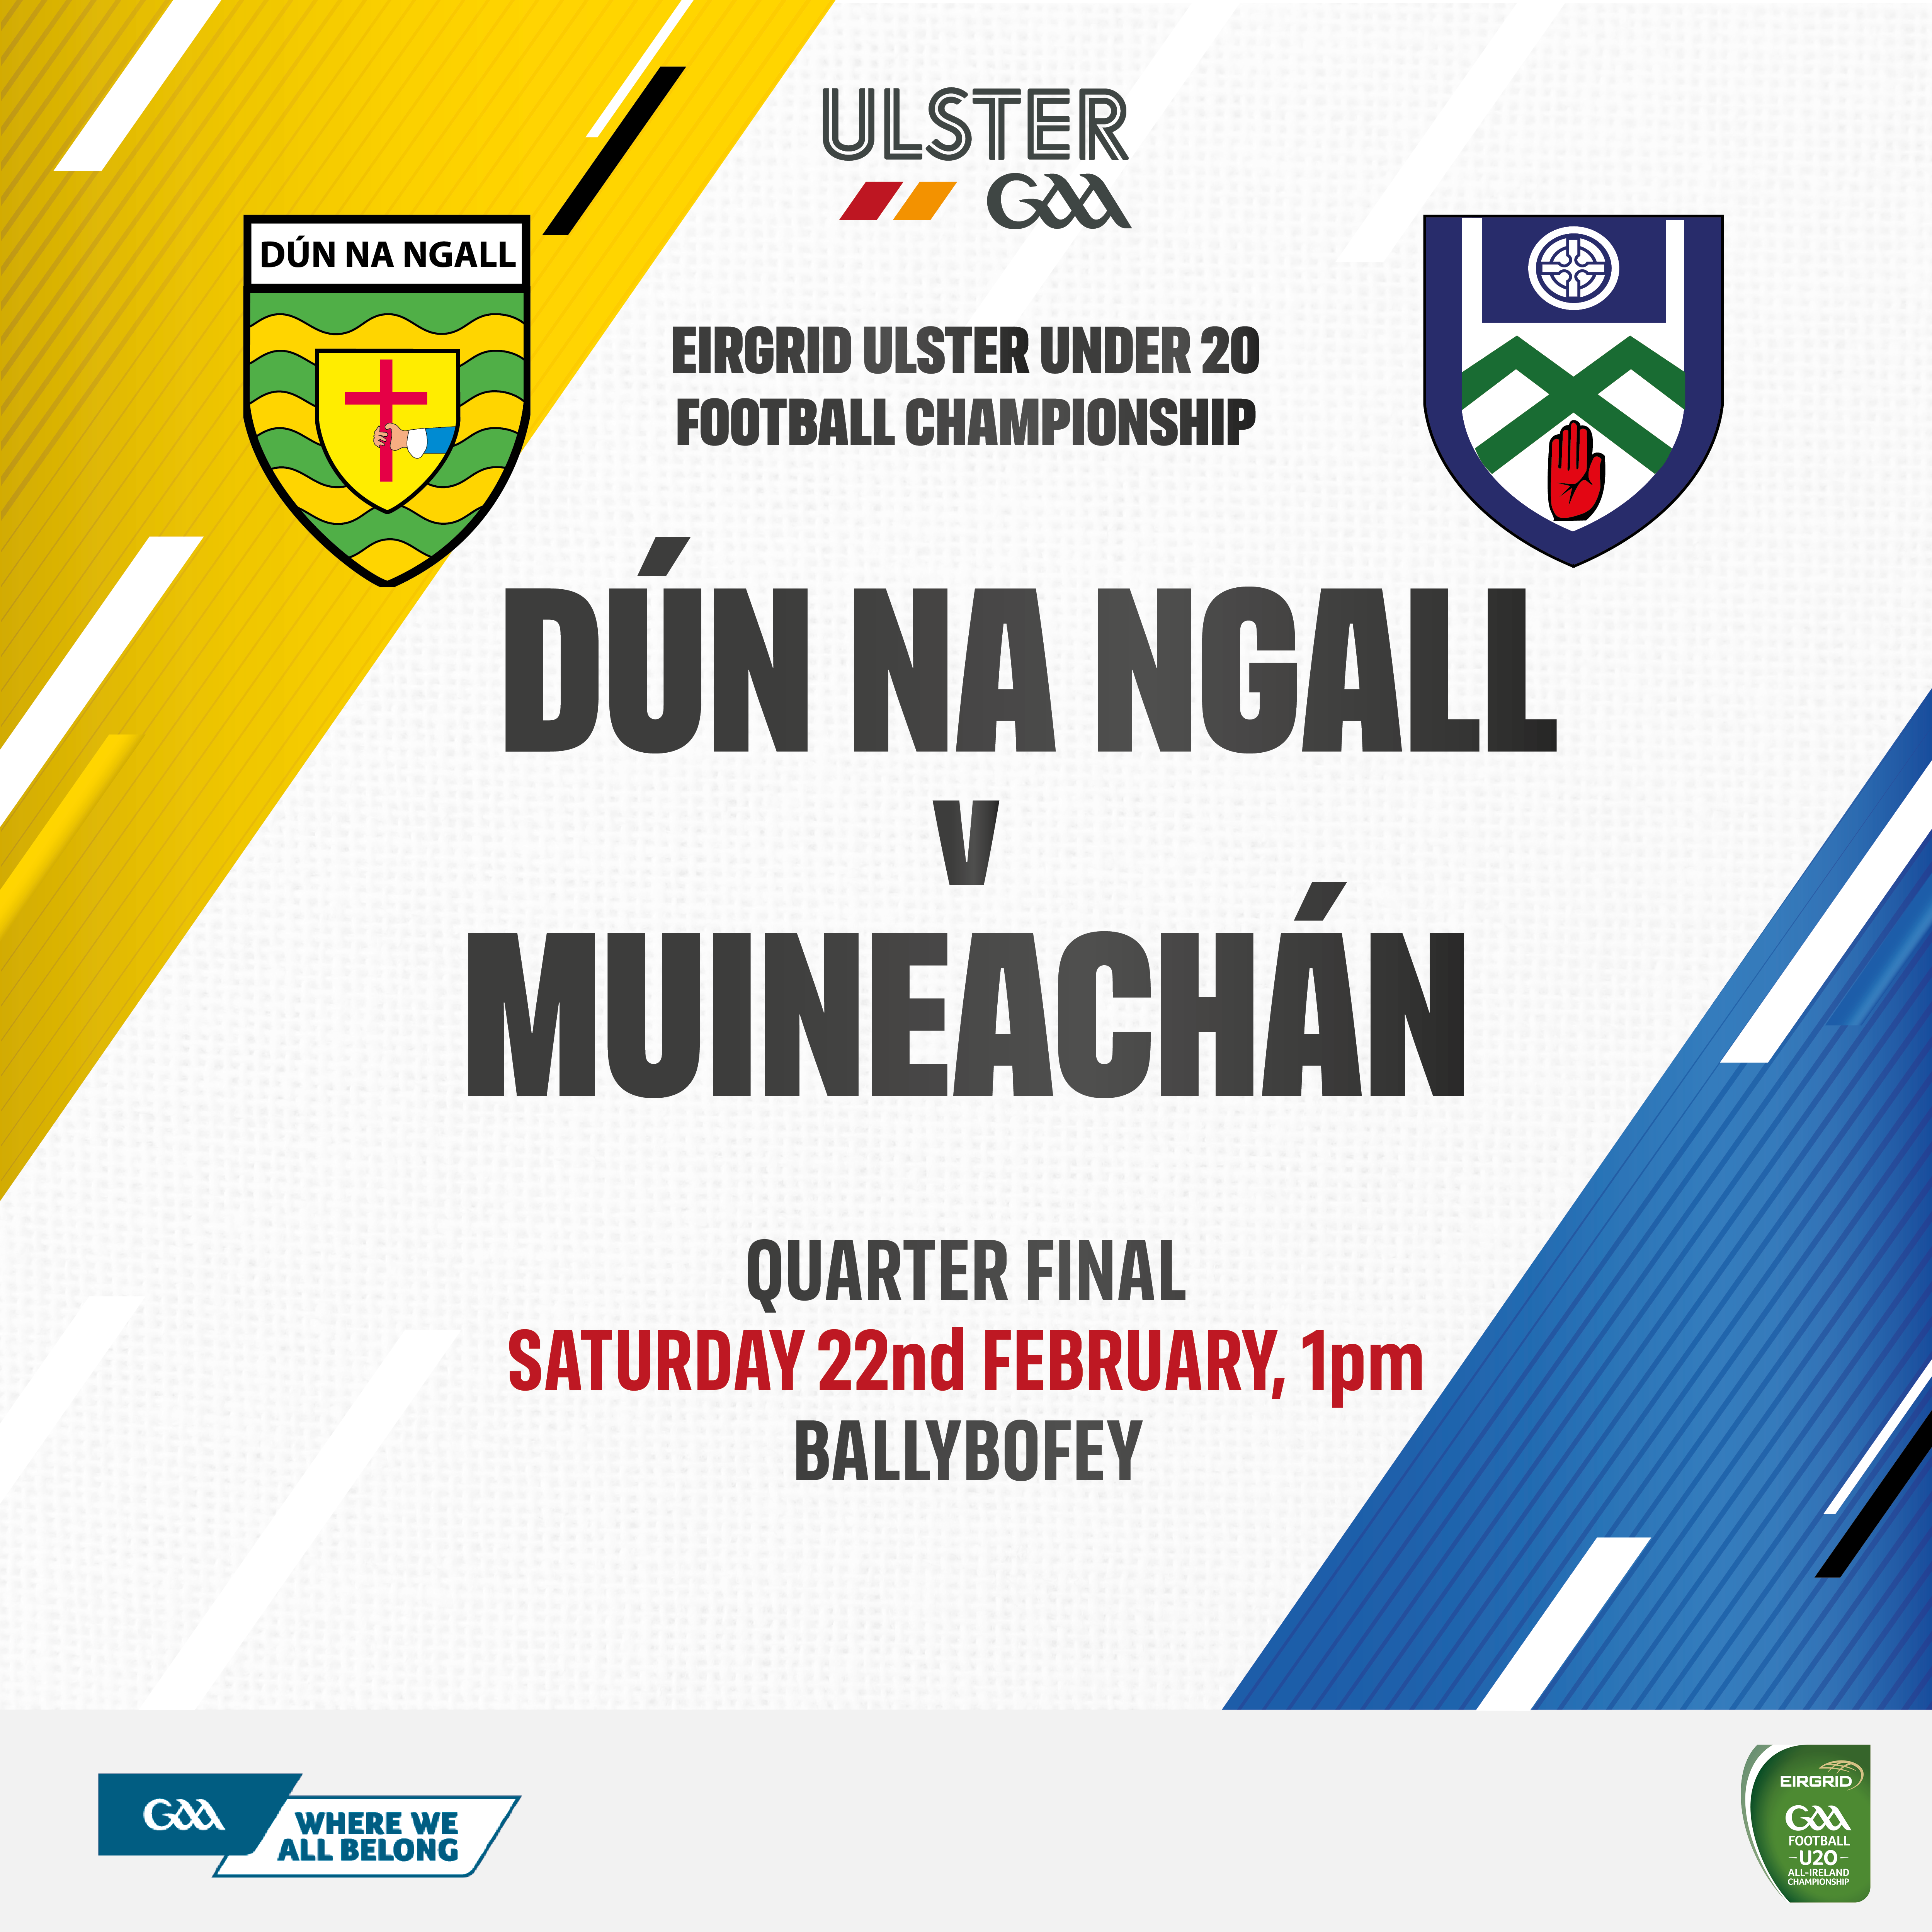 EirGrid Ulster U20 Football Championship Quarter Final  Monaghan V Donegal – Buy your tickets online today